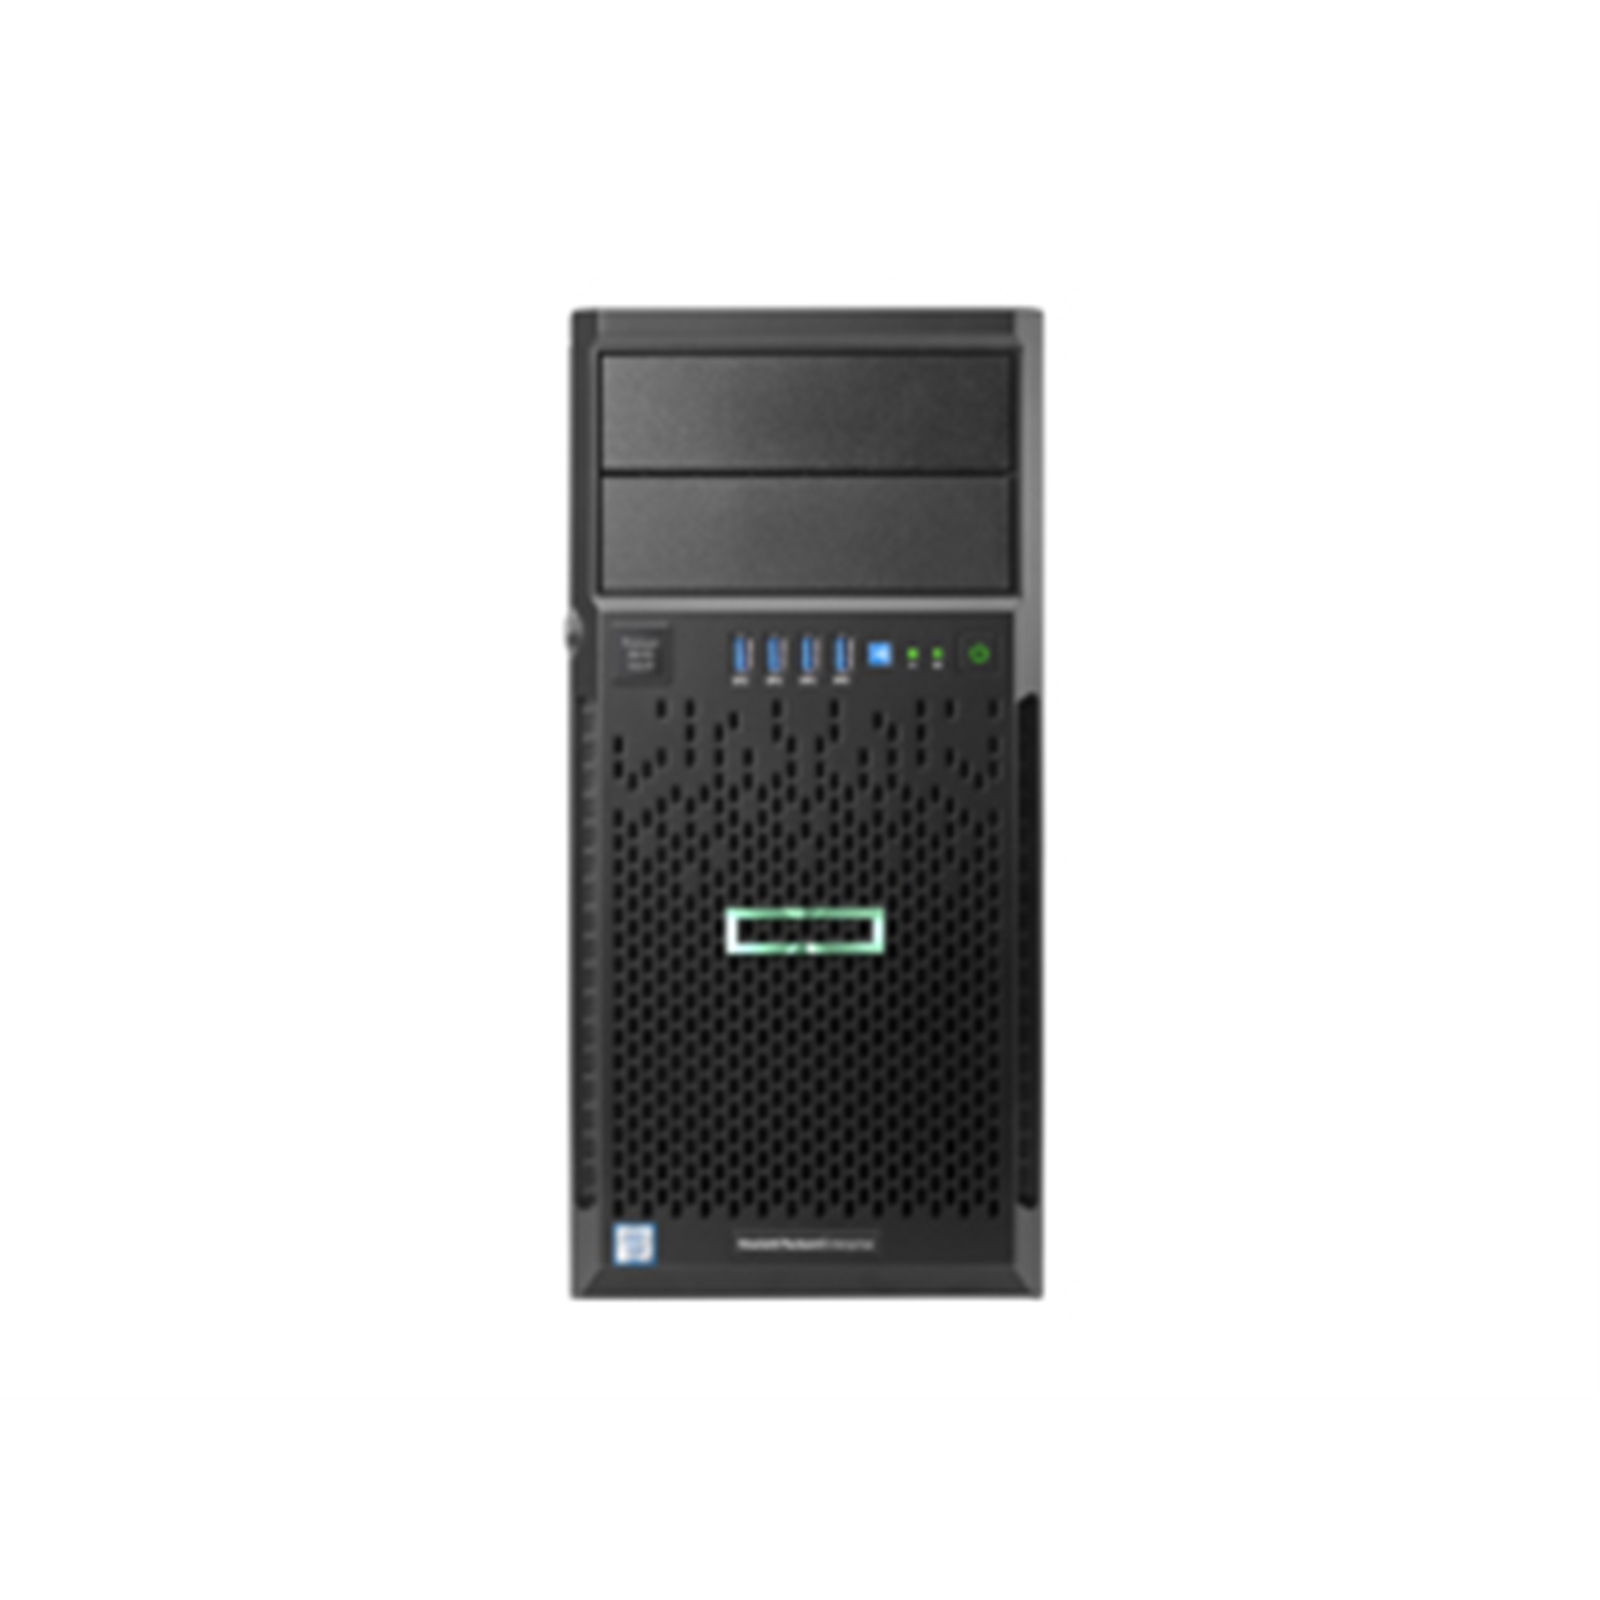 HPE P03705-425 ENTERPRISE HP PROLIANT ML30 GEN9 QUAD CORE 8GB RAM TOWER SERVER